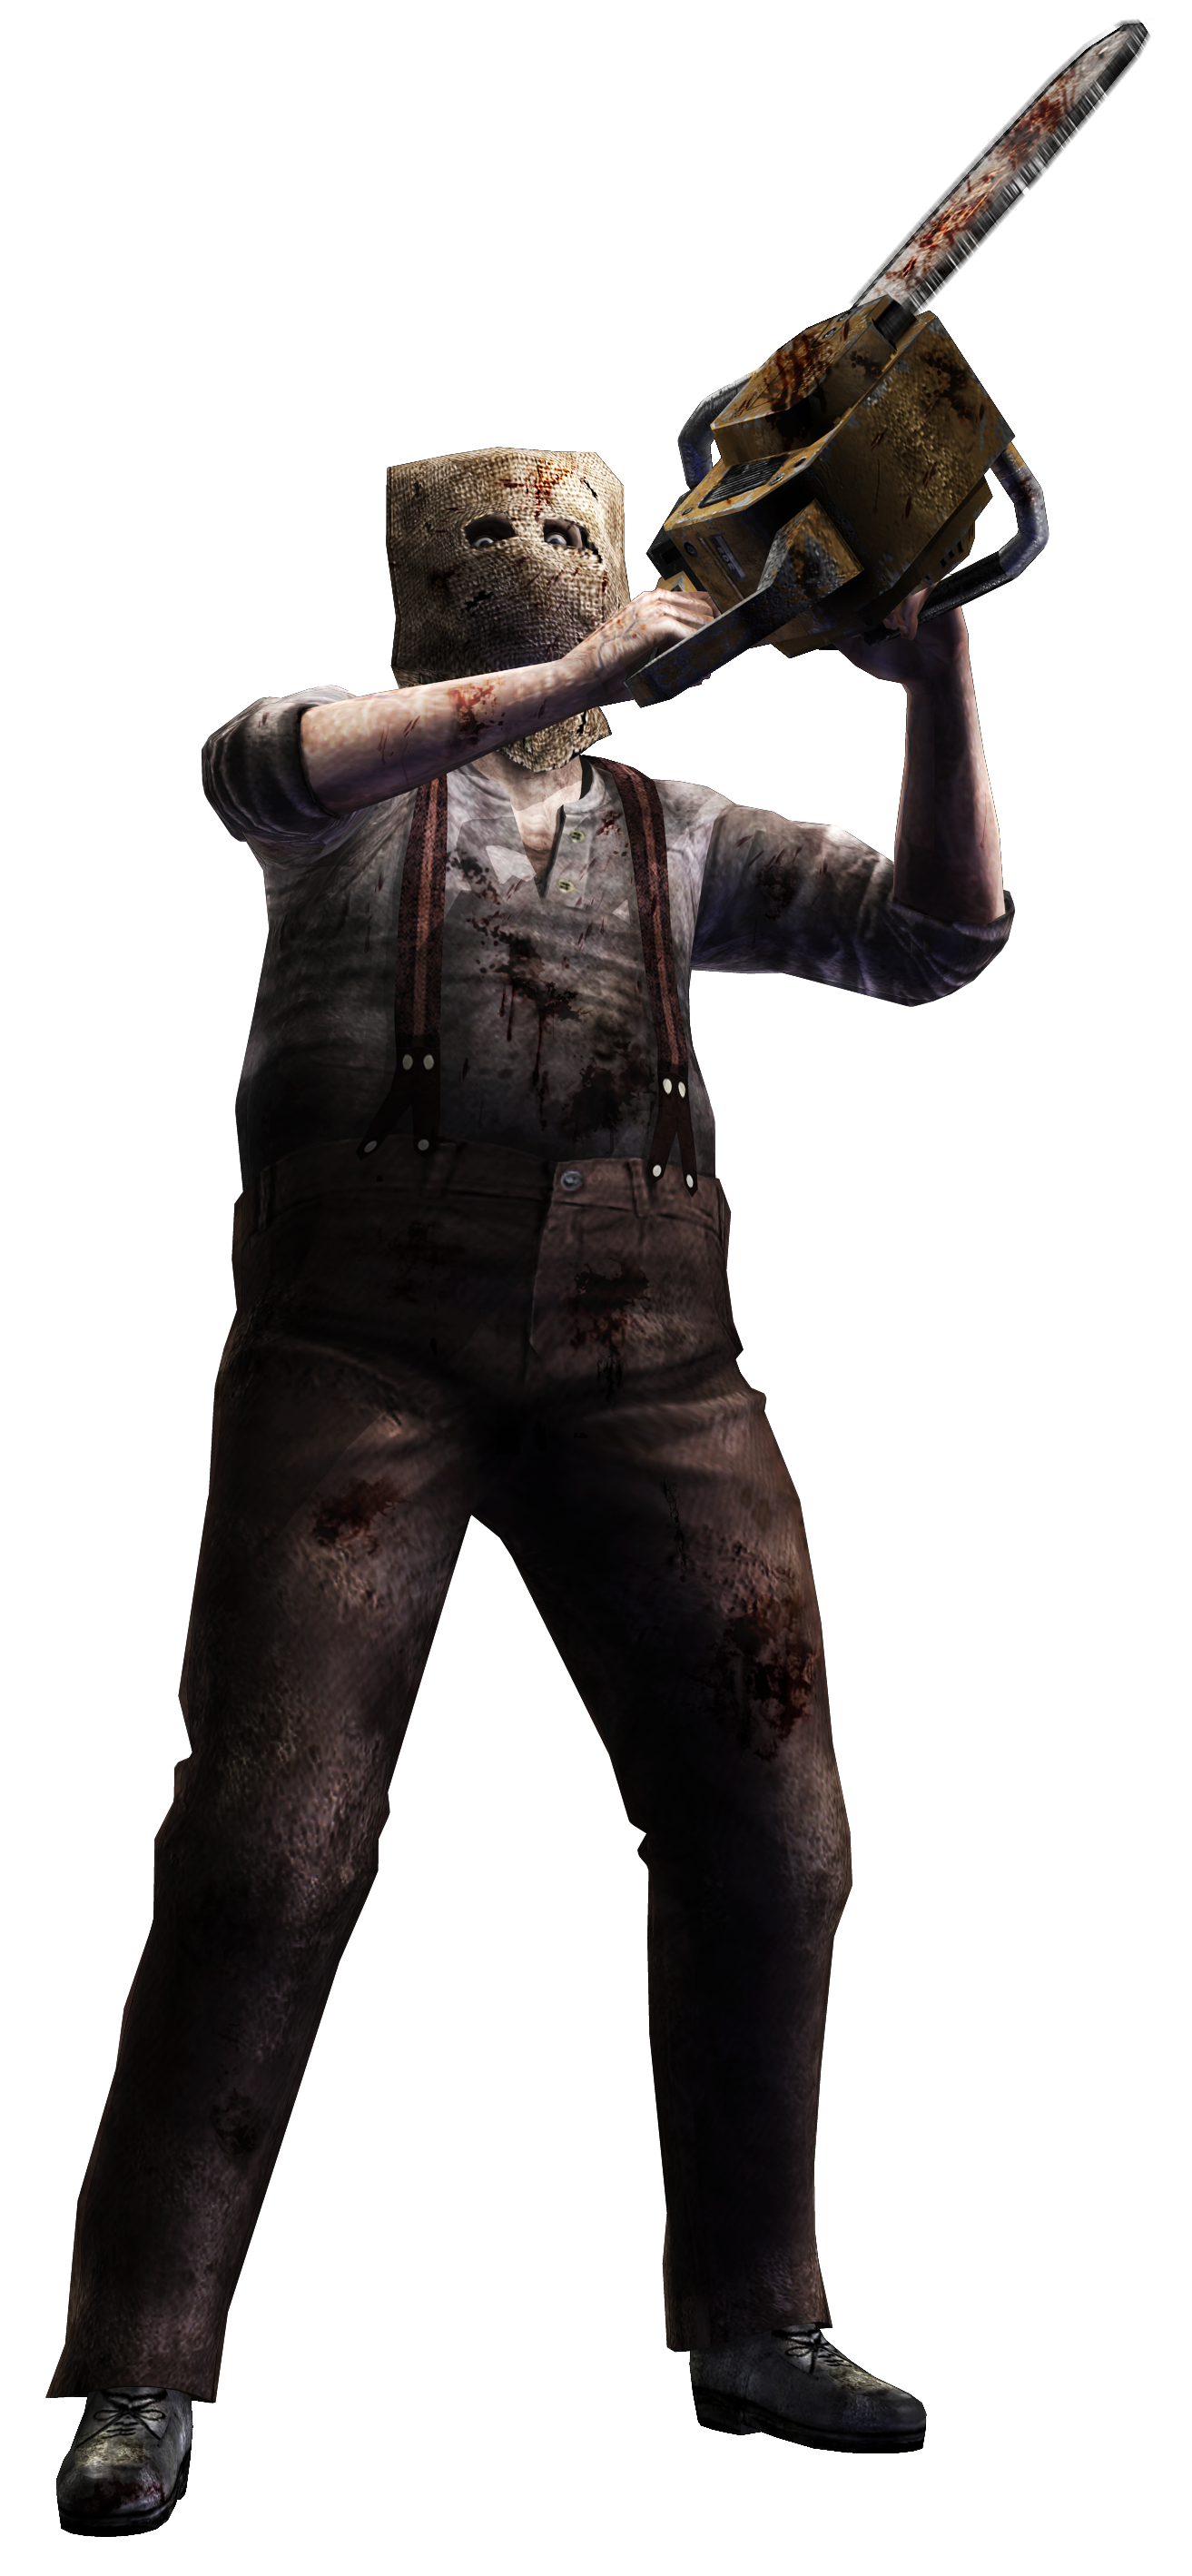 Resident evil 4 png. Chainsaw man wiki fandom